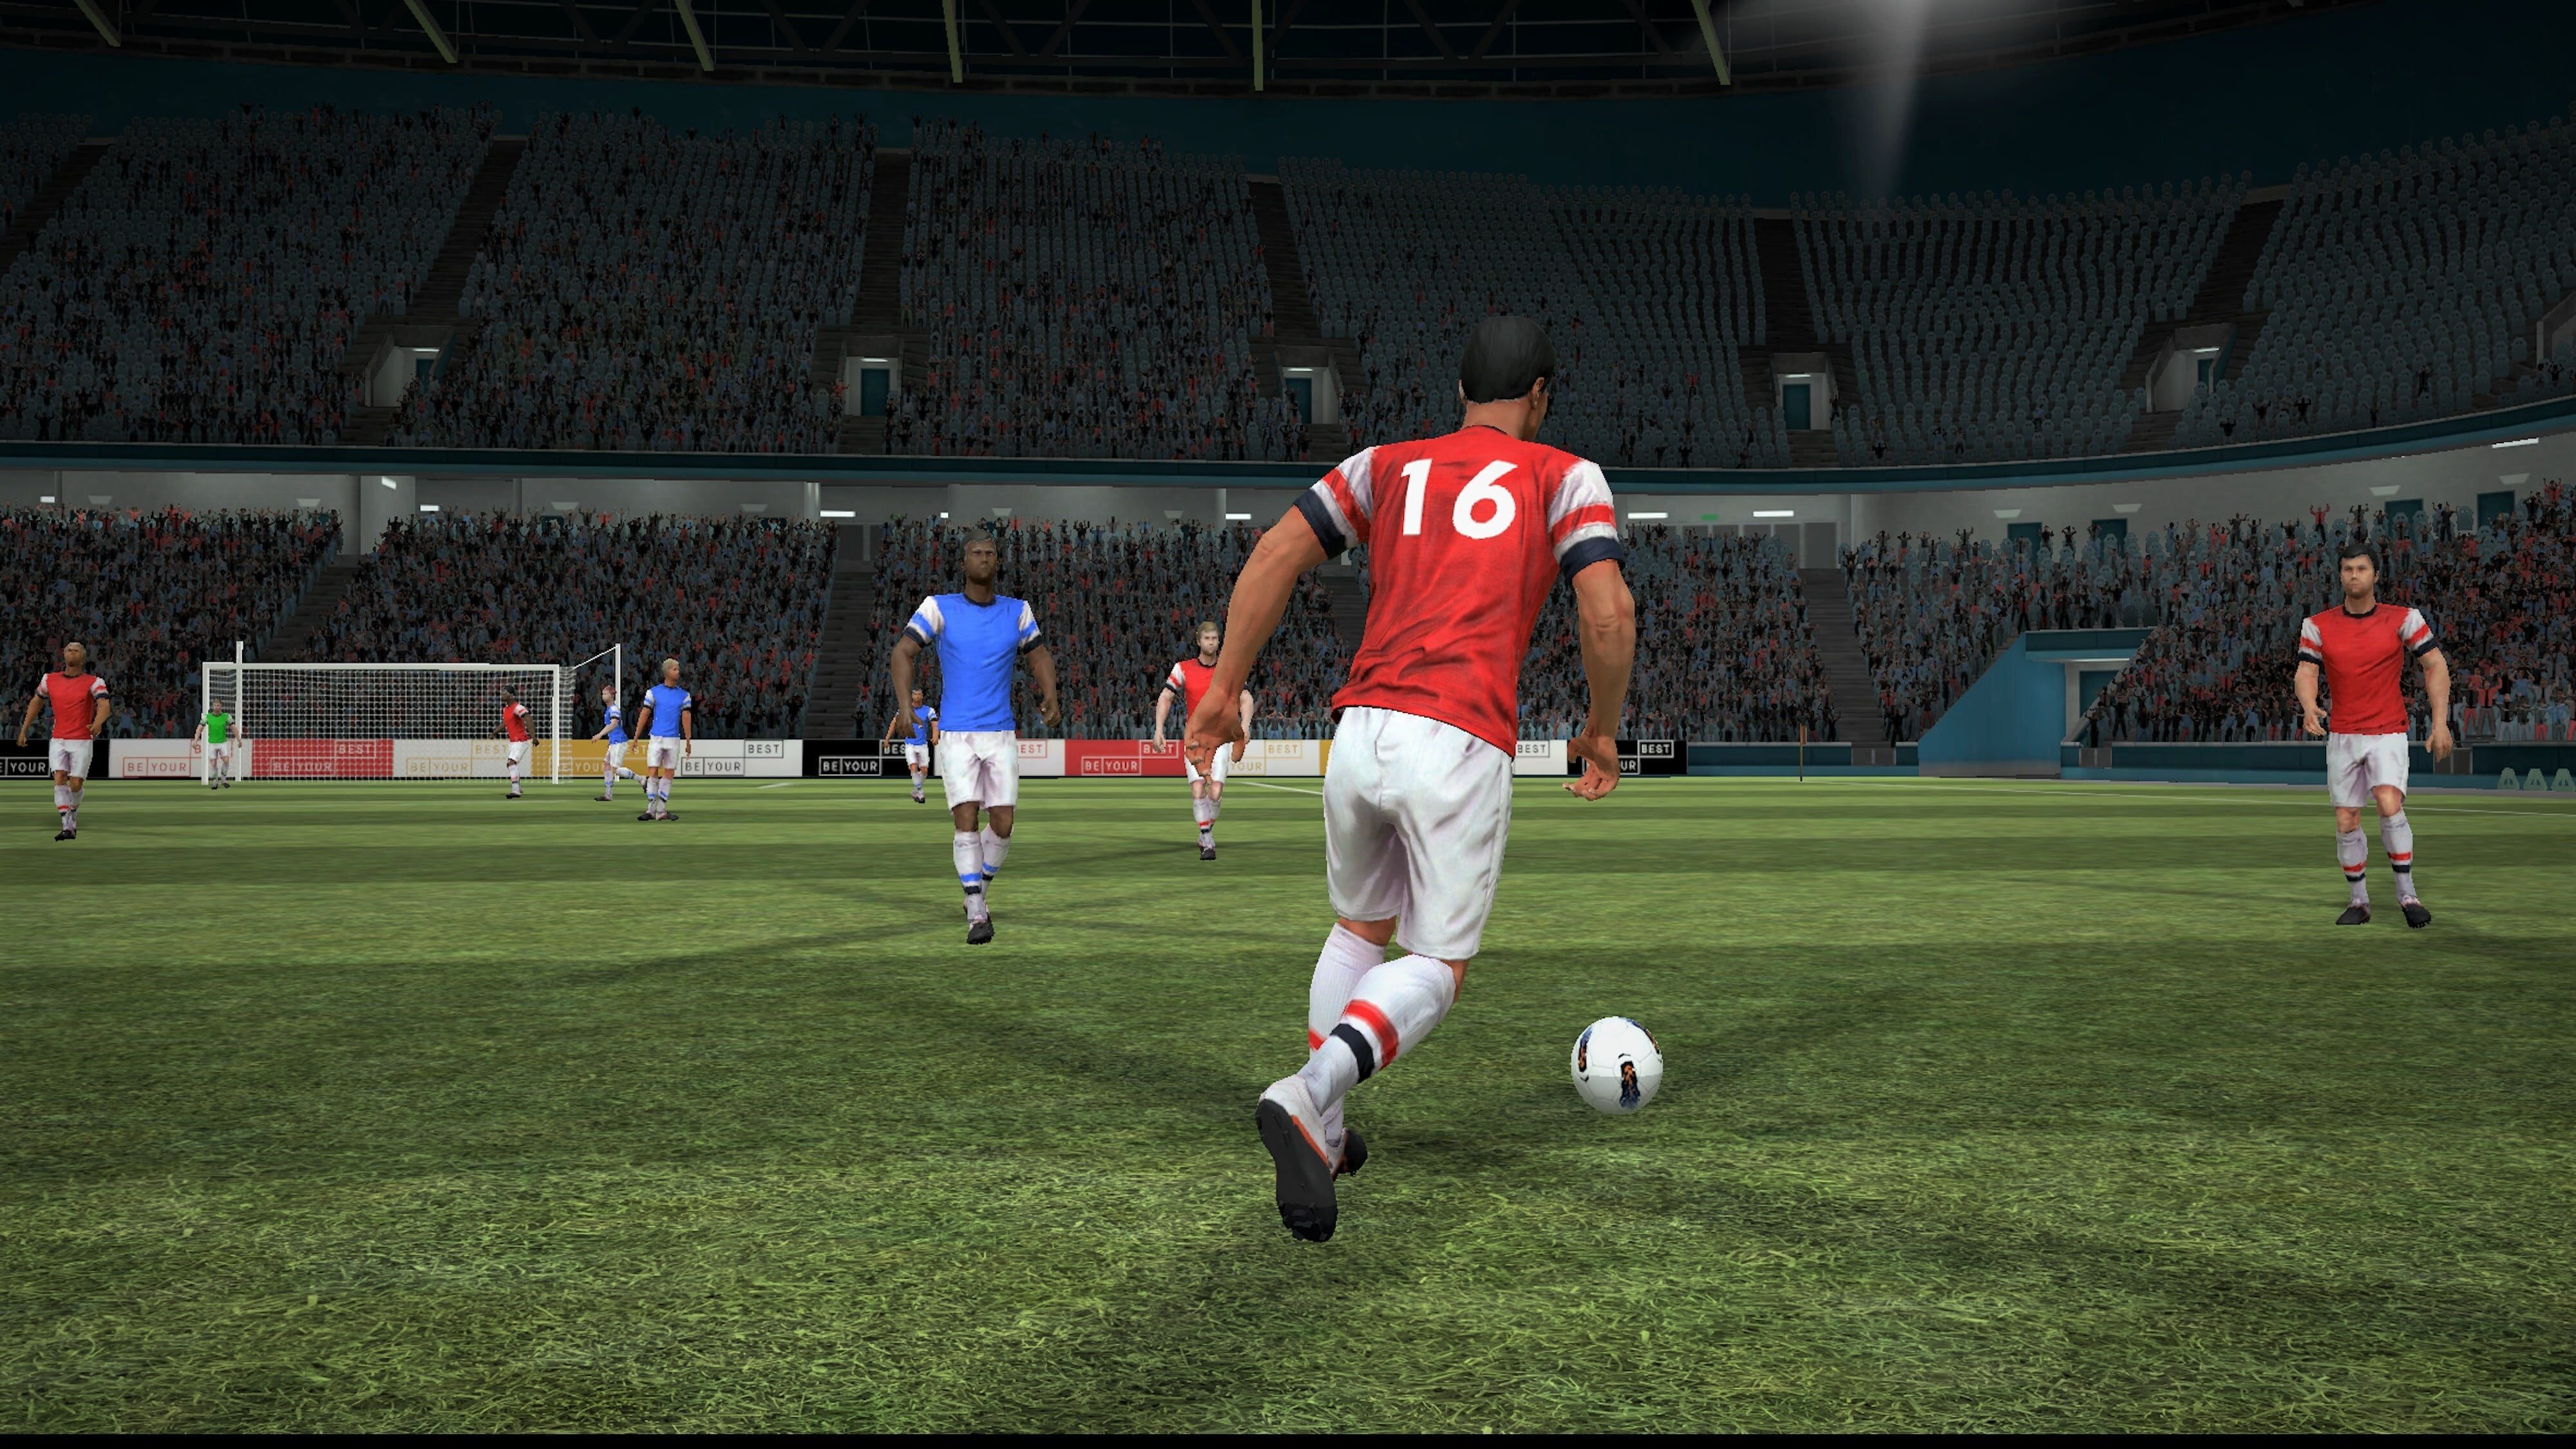 A digital rendering of a football player on the pitch during a match, taken from inside the Be Your Best VR-trainer.